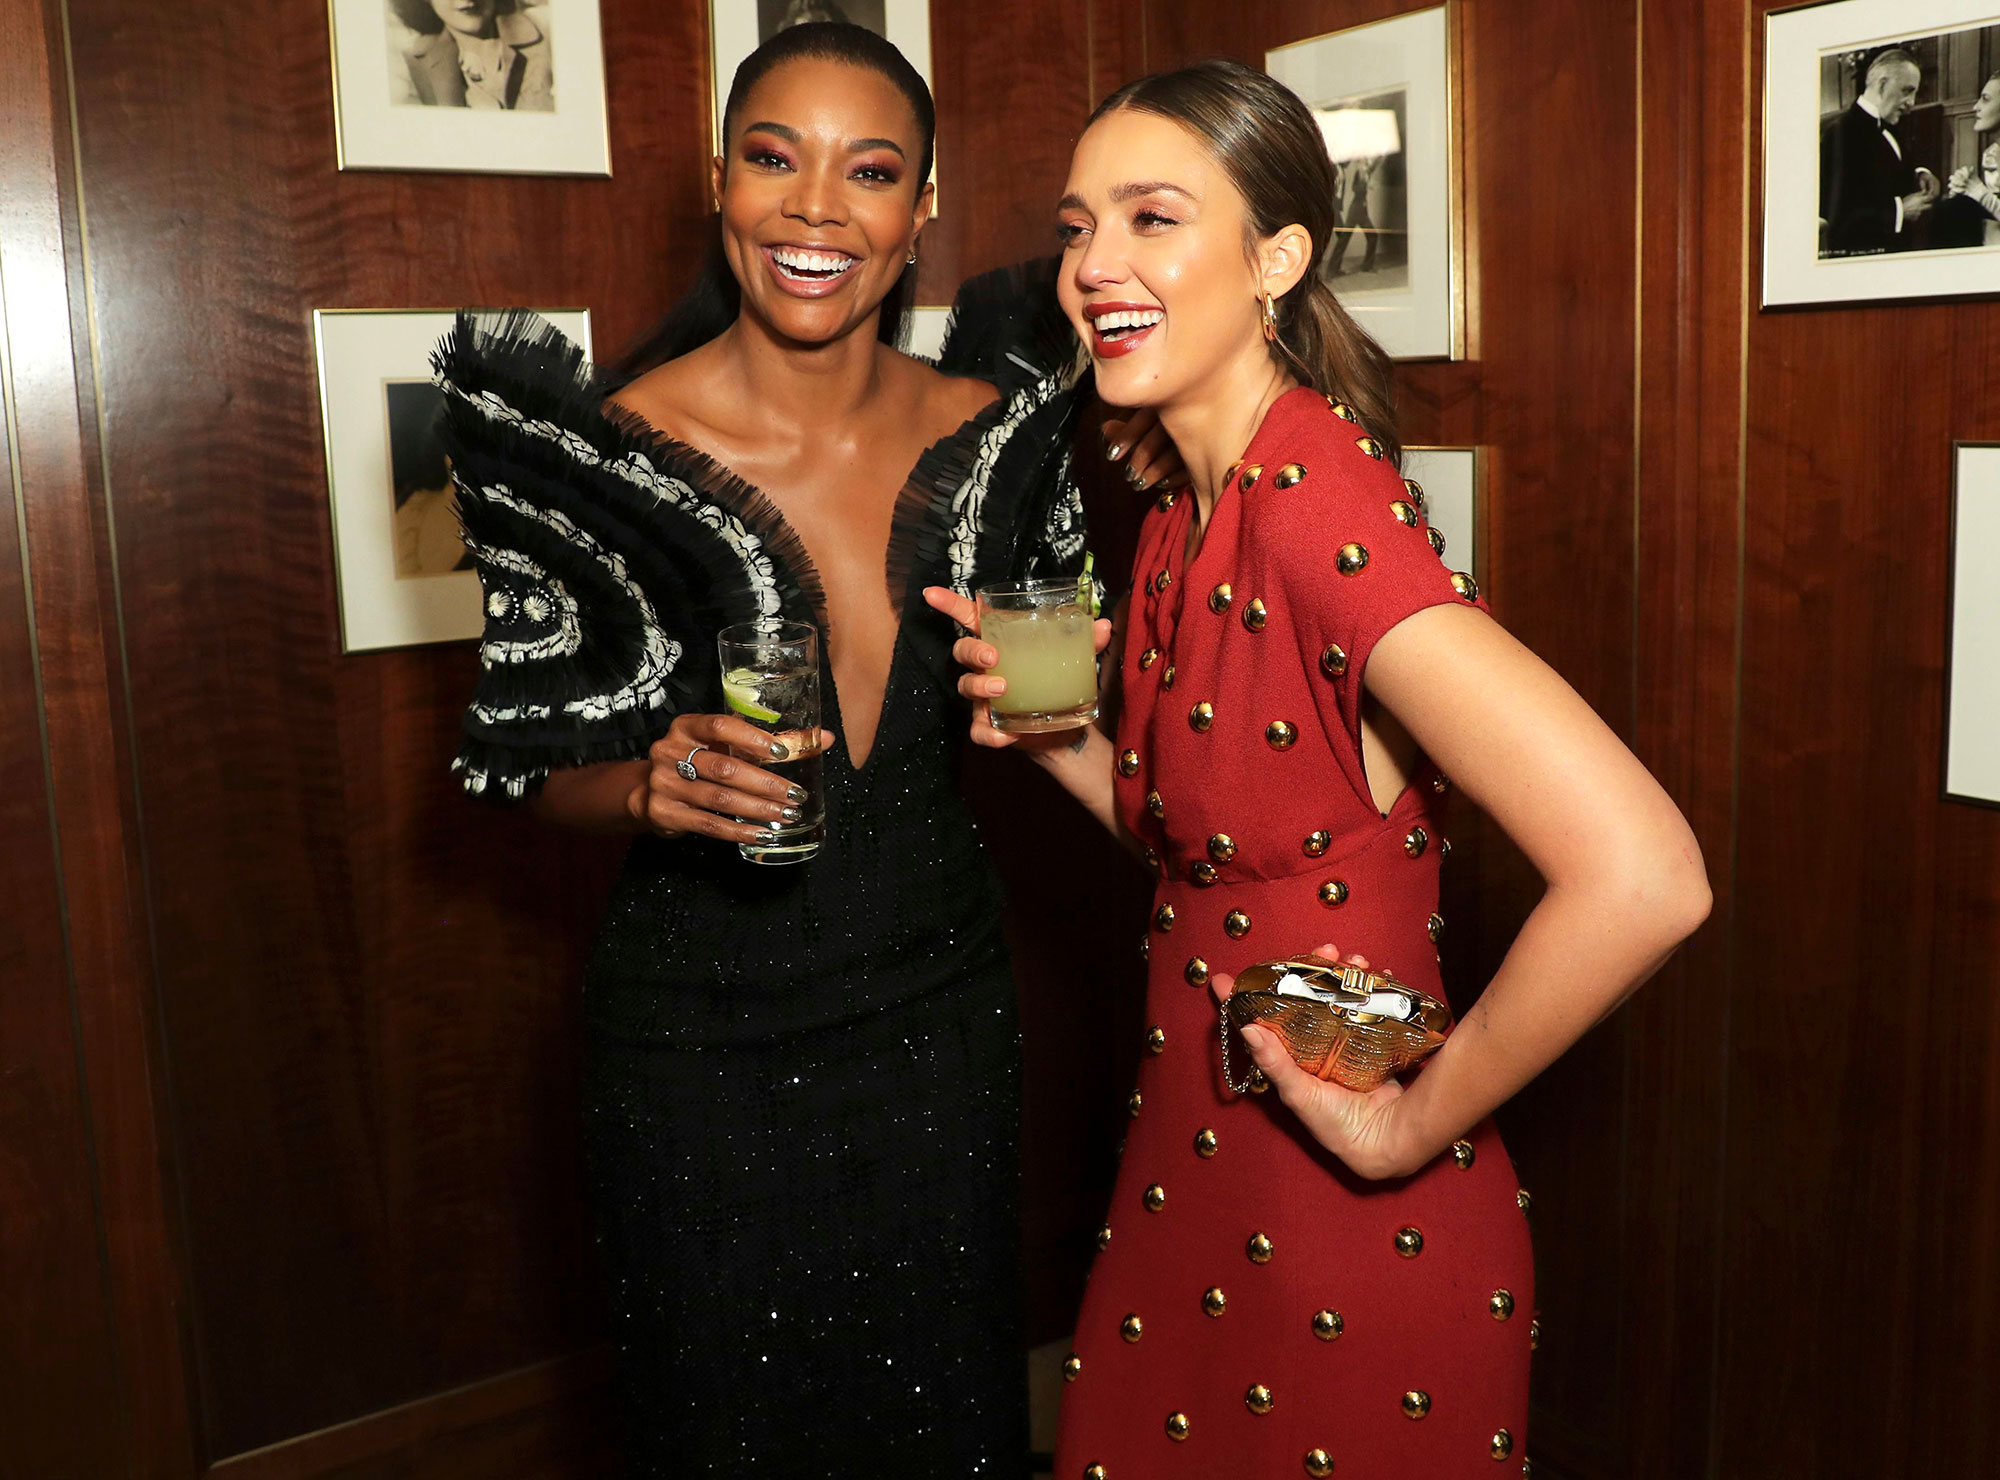 Mandatory Credit: Photo by Chelsea Lauren/Variety/REX/Shutterstock (10234258g) Gabrielle Union and Jessica Alba 'L.A.'s Finest' TV Show Premiere, After Party, Sunset Tower Hotel, Los Angeles, USA - 10 May 2019